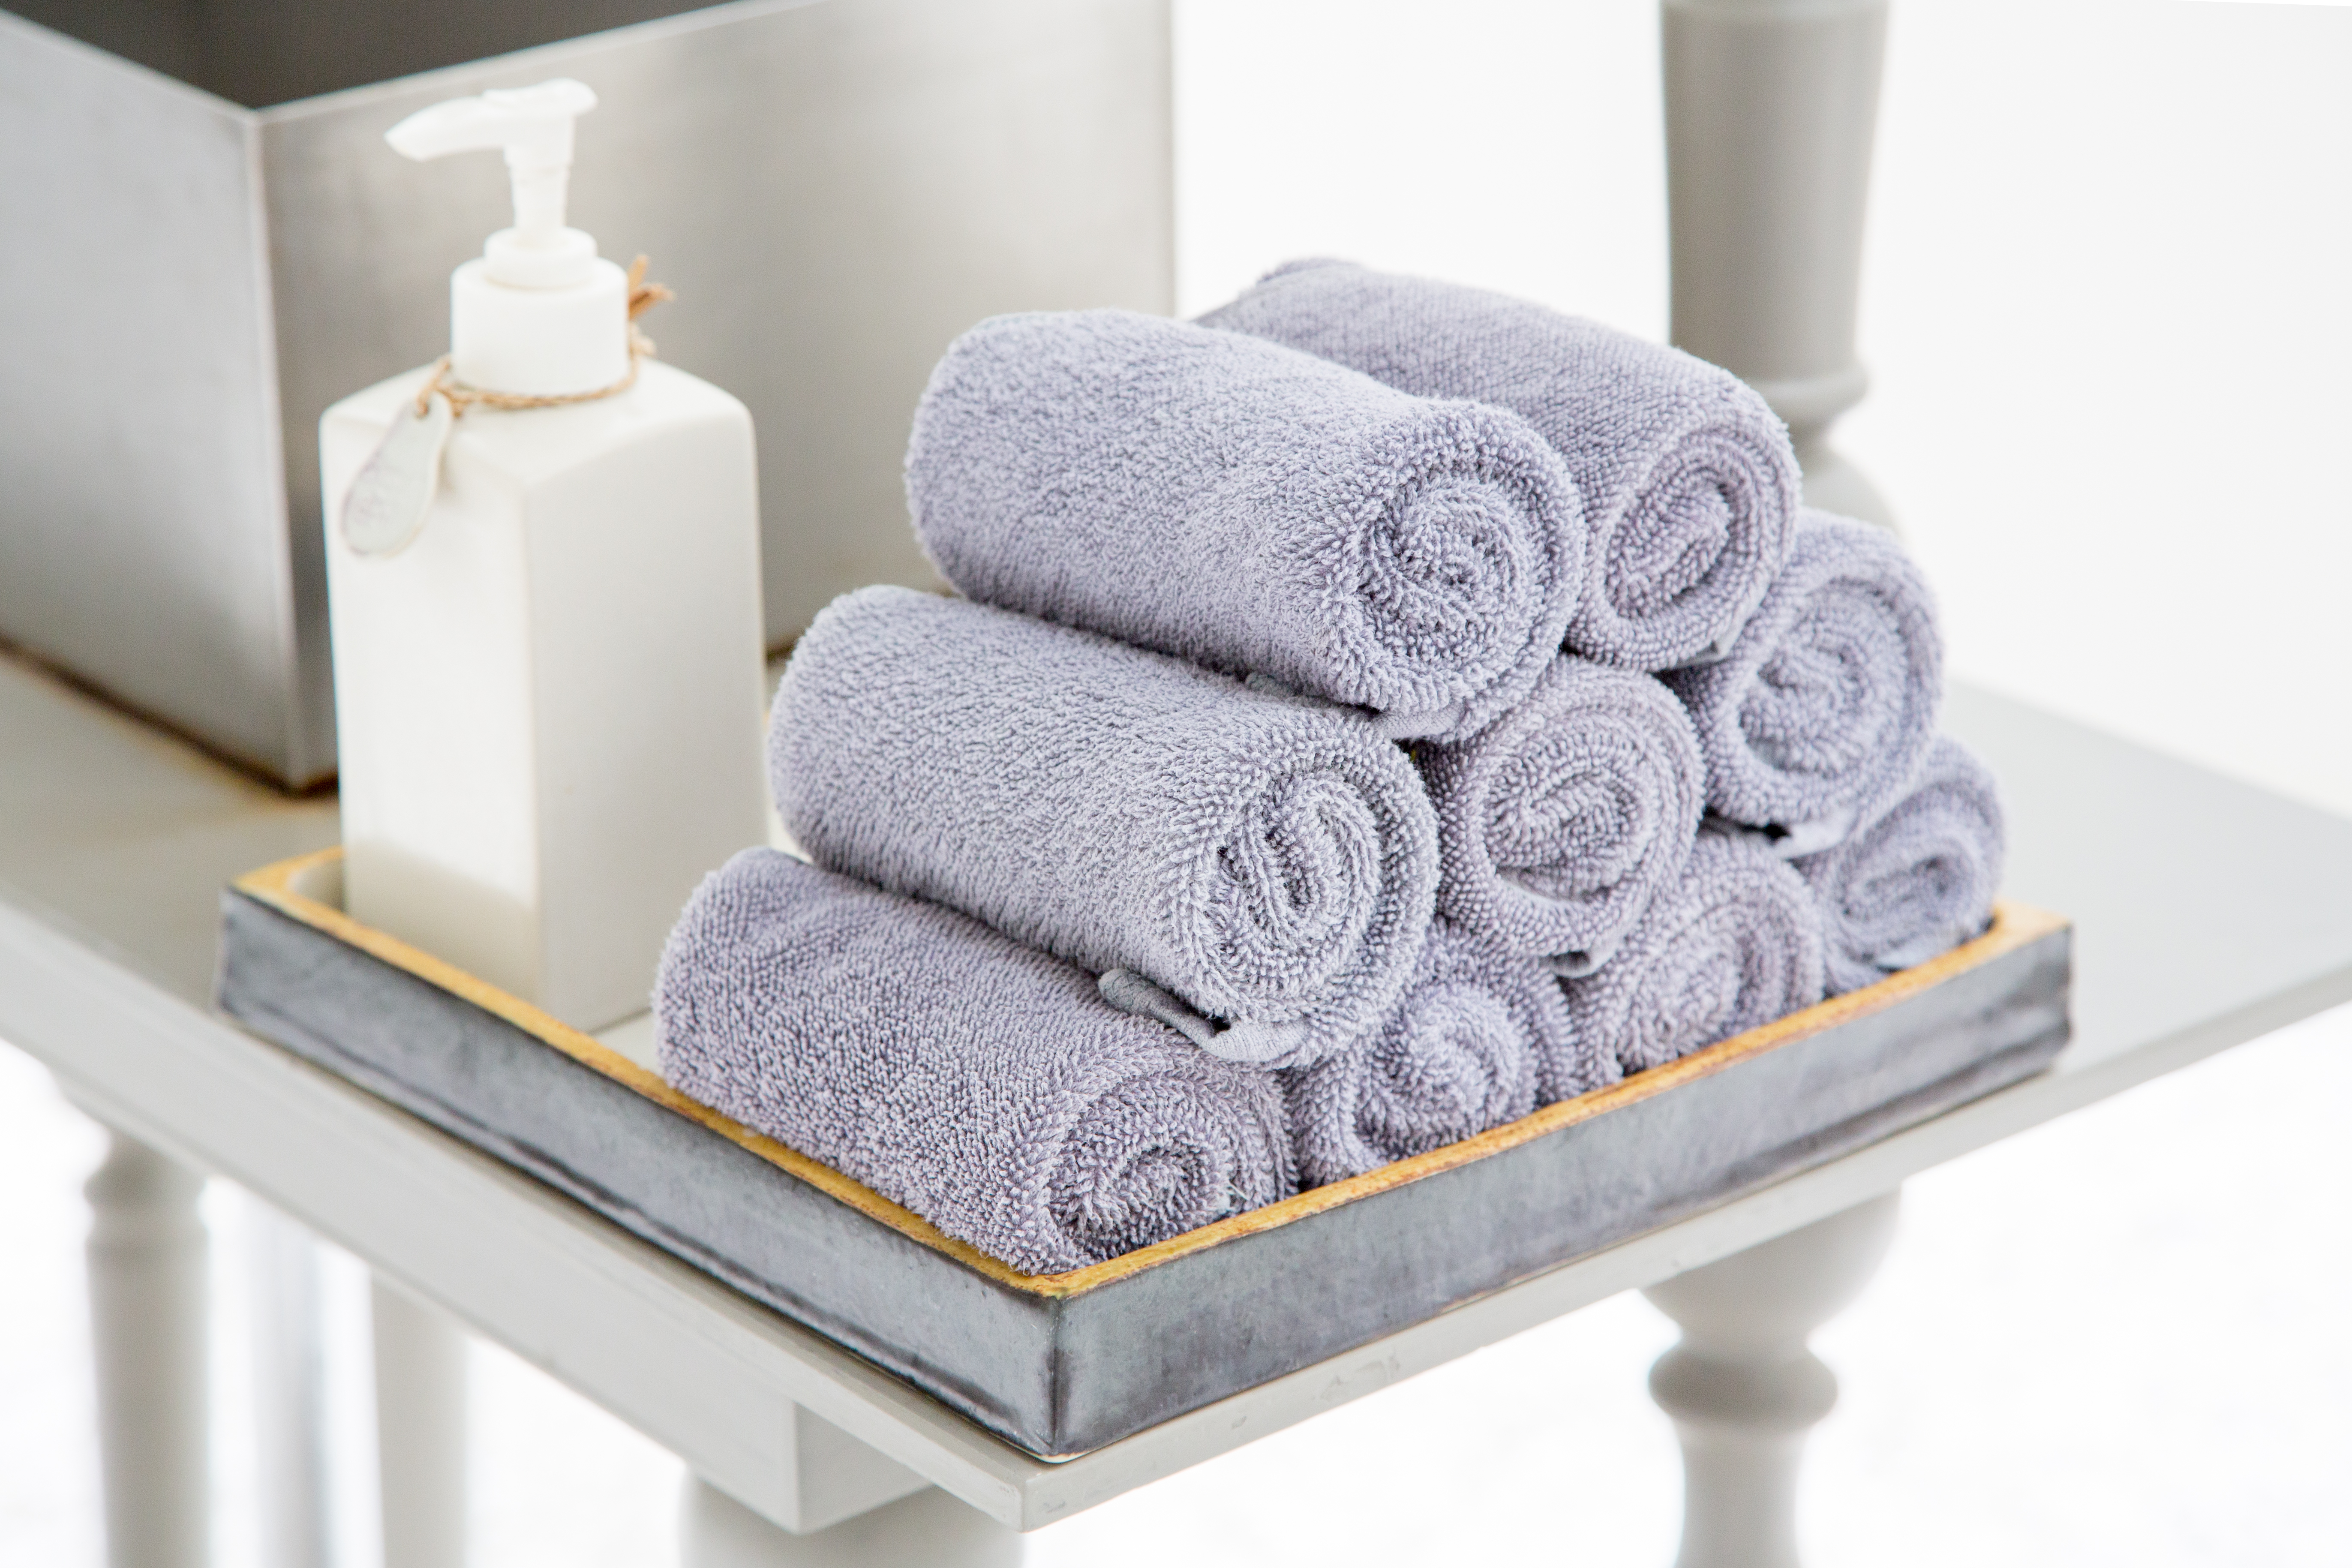 Plain dyed hotel towels.